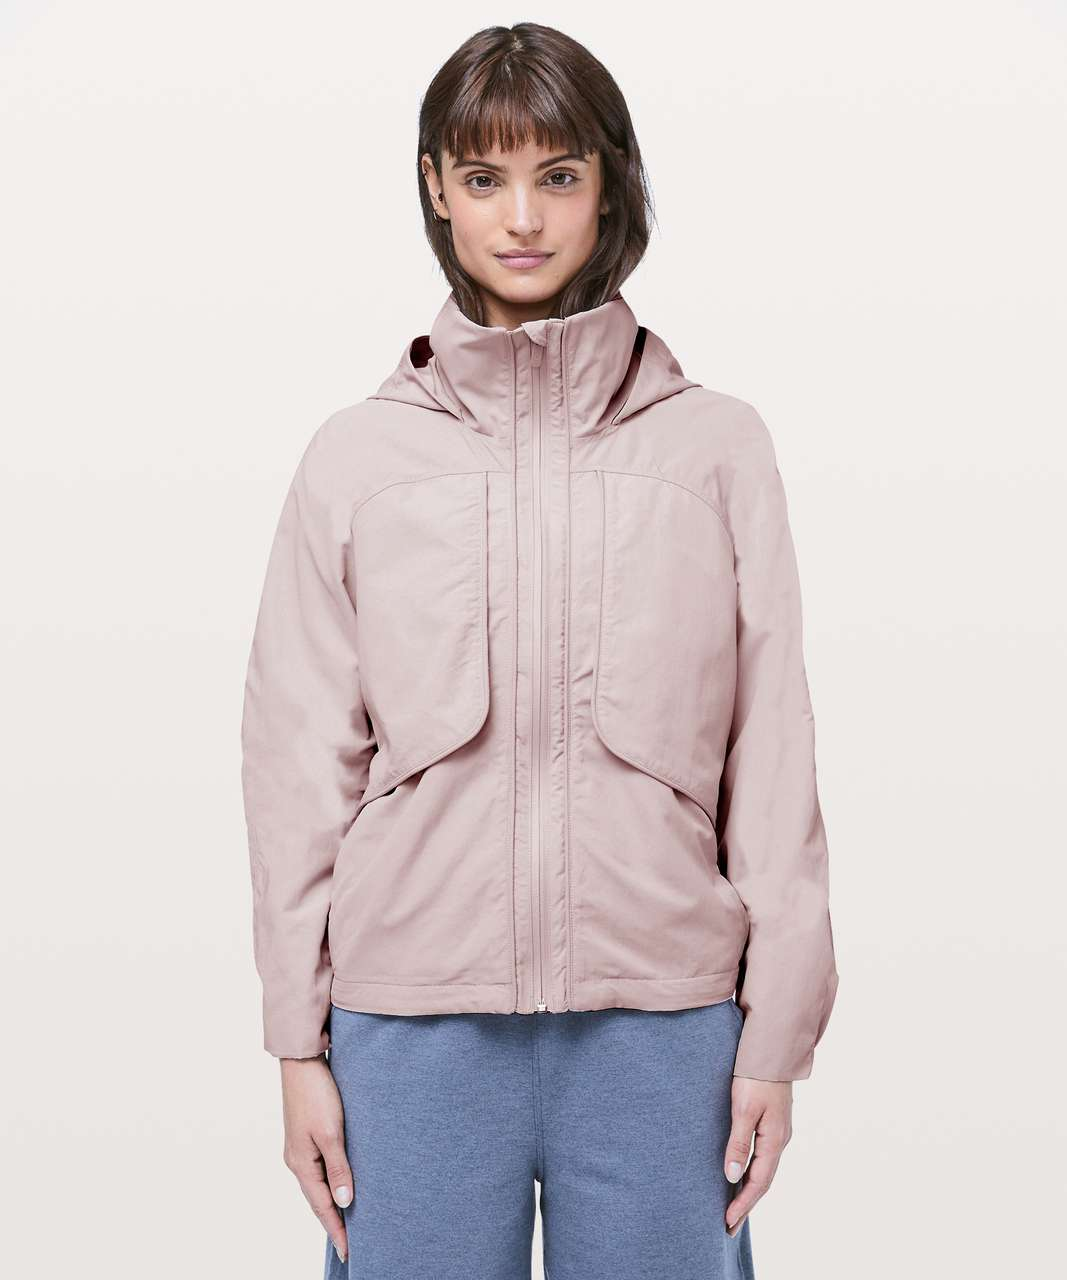 Lululemon Always Effortless Jacket - Pink Bliss